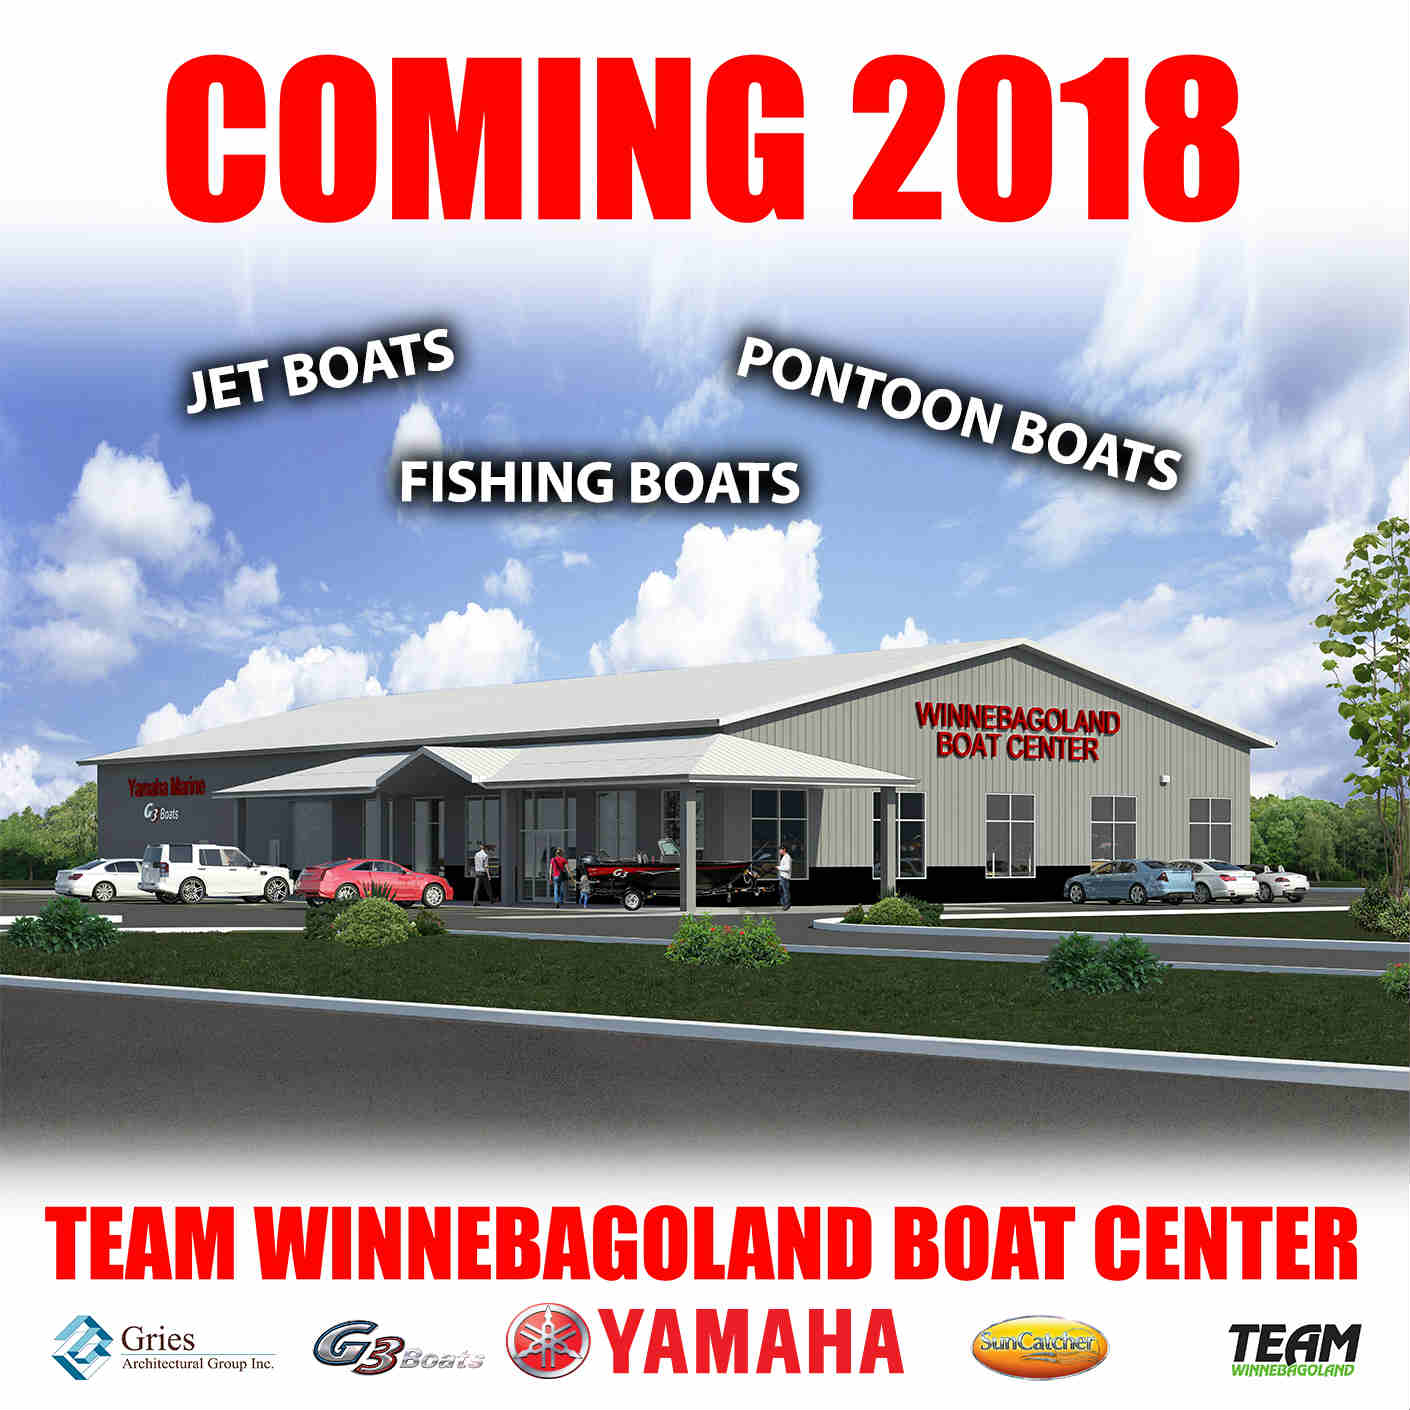 Boat Center CLPSmall